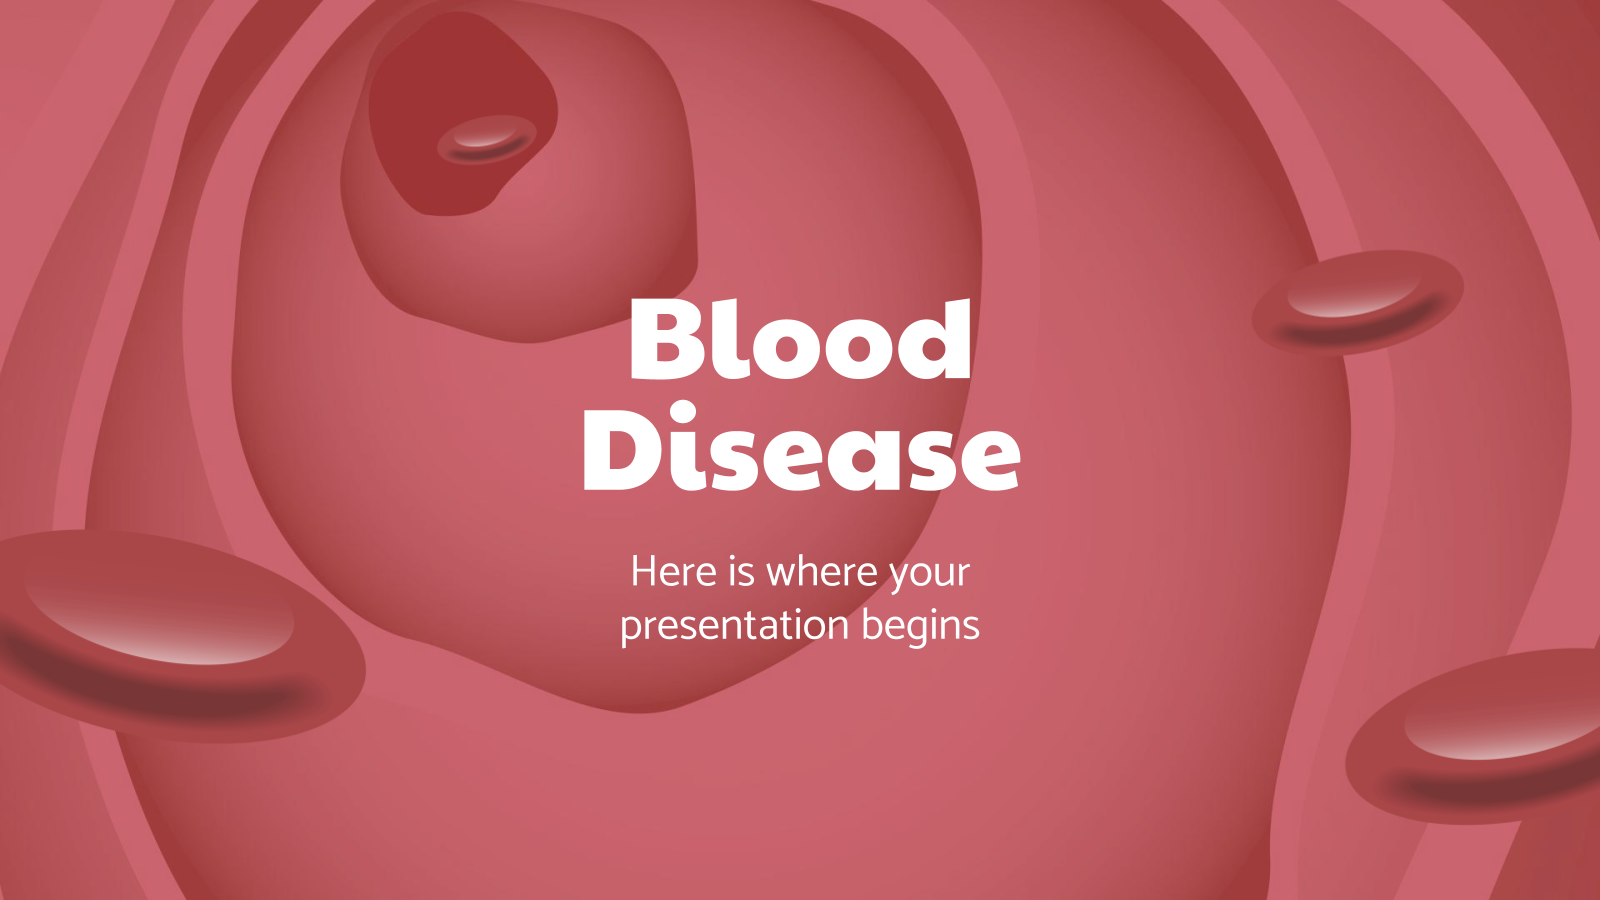 Blood Disease presentation template